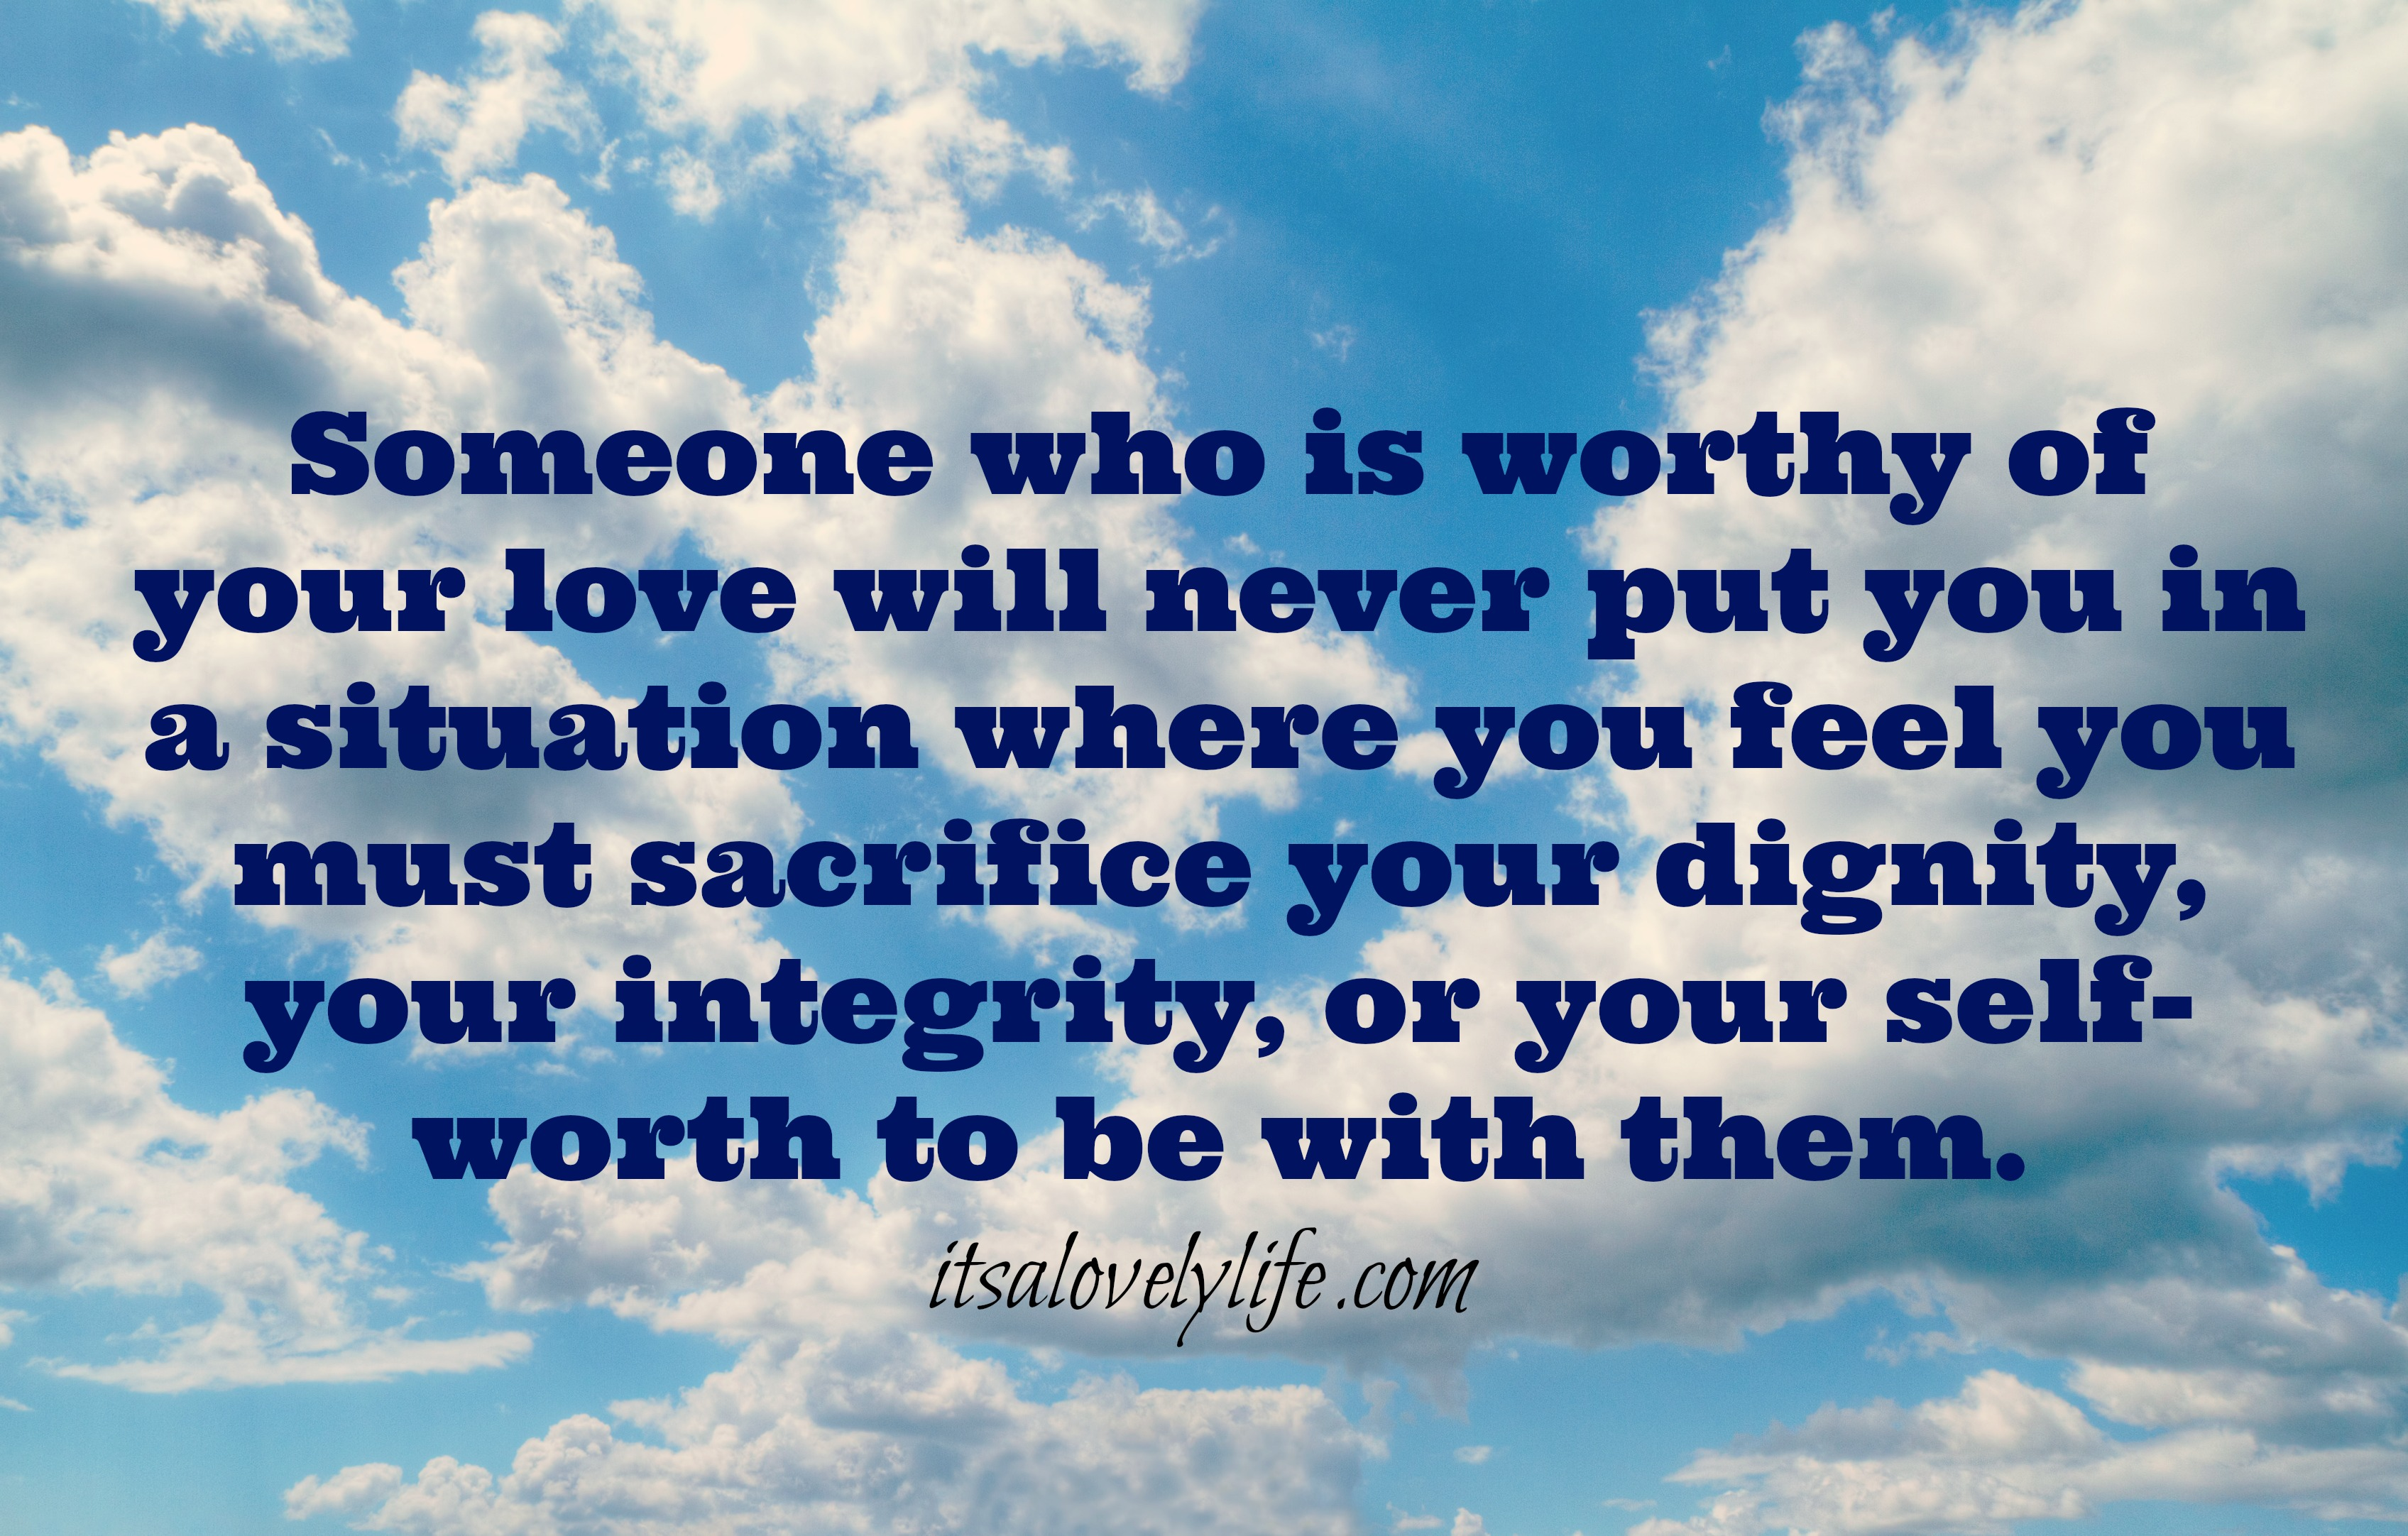 Life Sacrifice Quotes Monday Pep Talk 10 Quotes About Relationships & Love  It's A